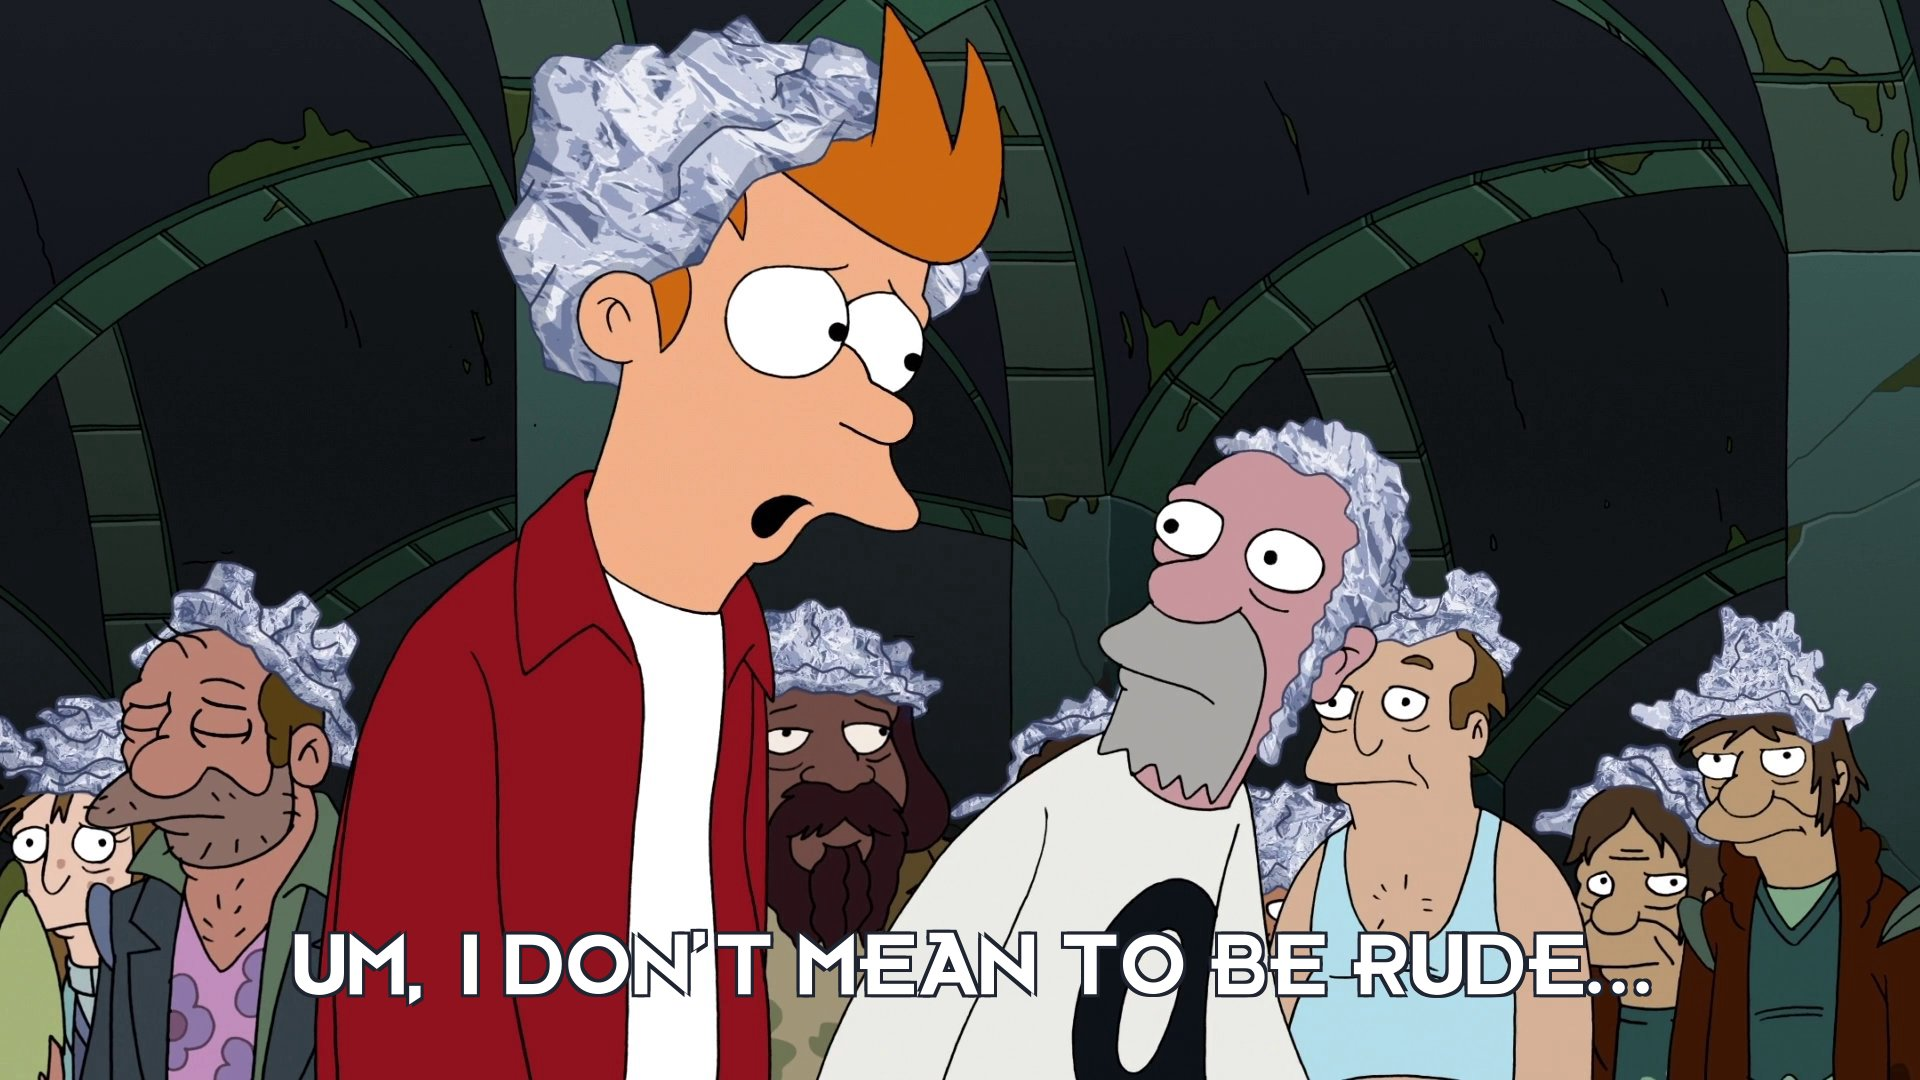 Philip J Fry: Um, I don't mean to be rude...